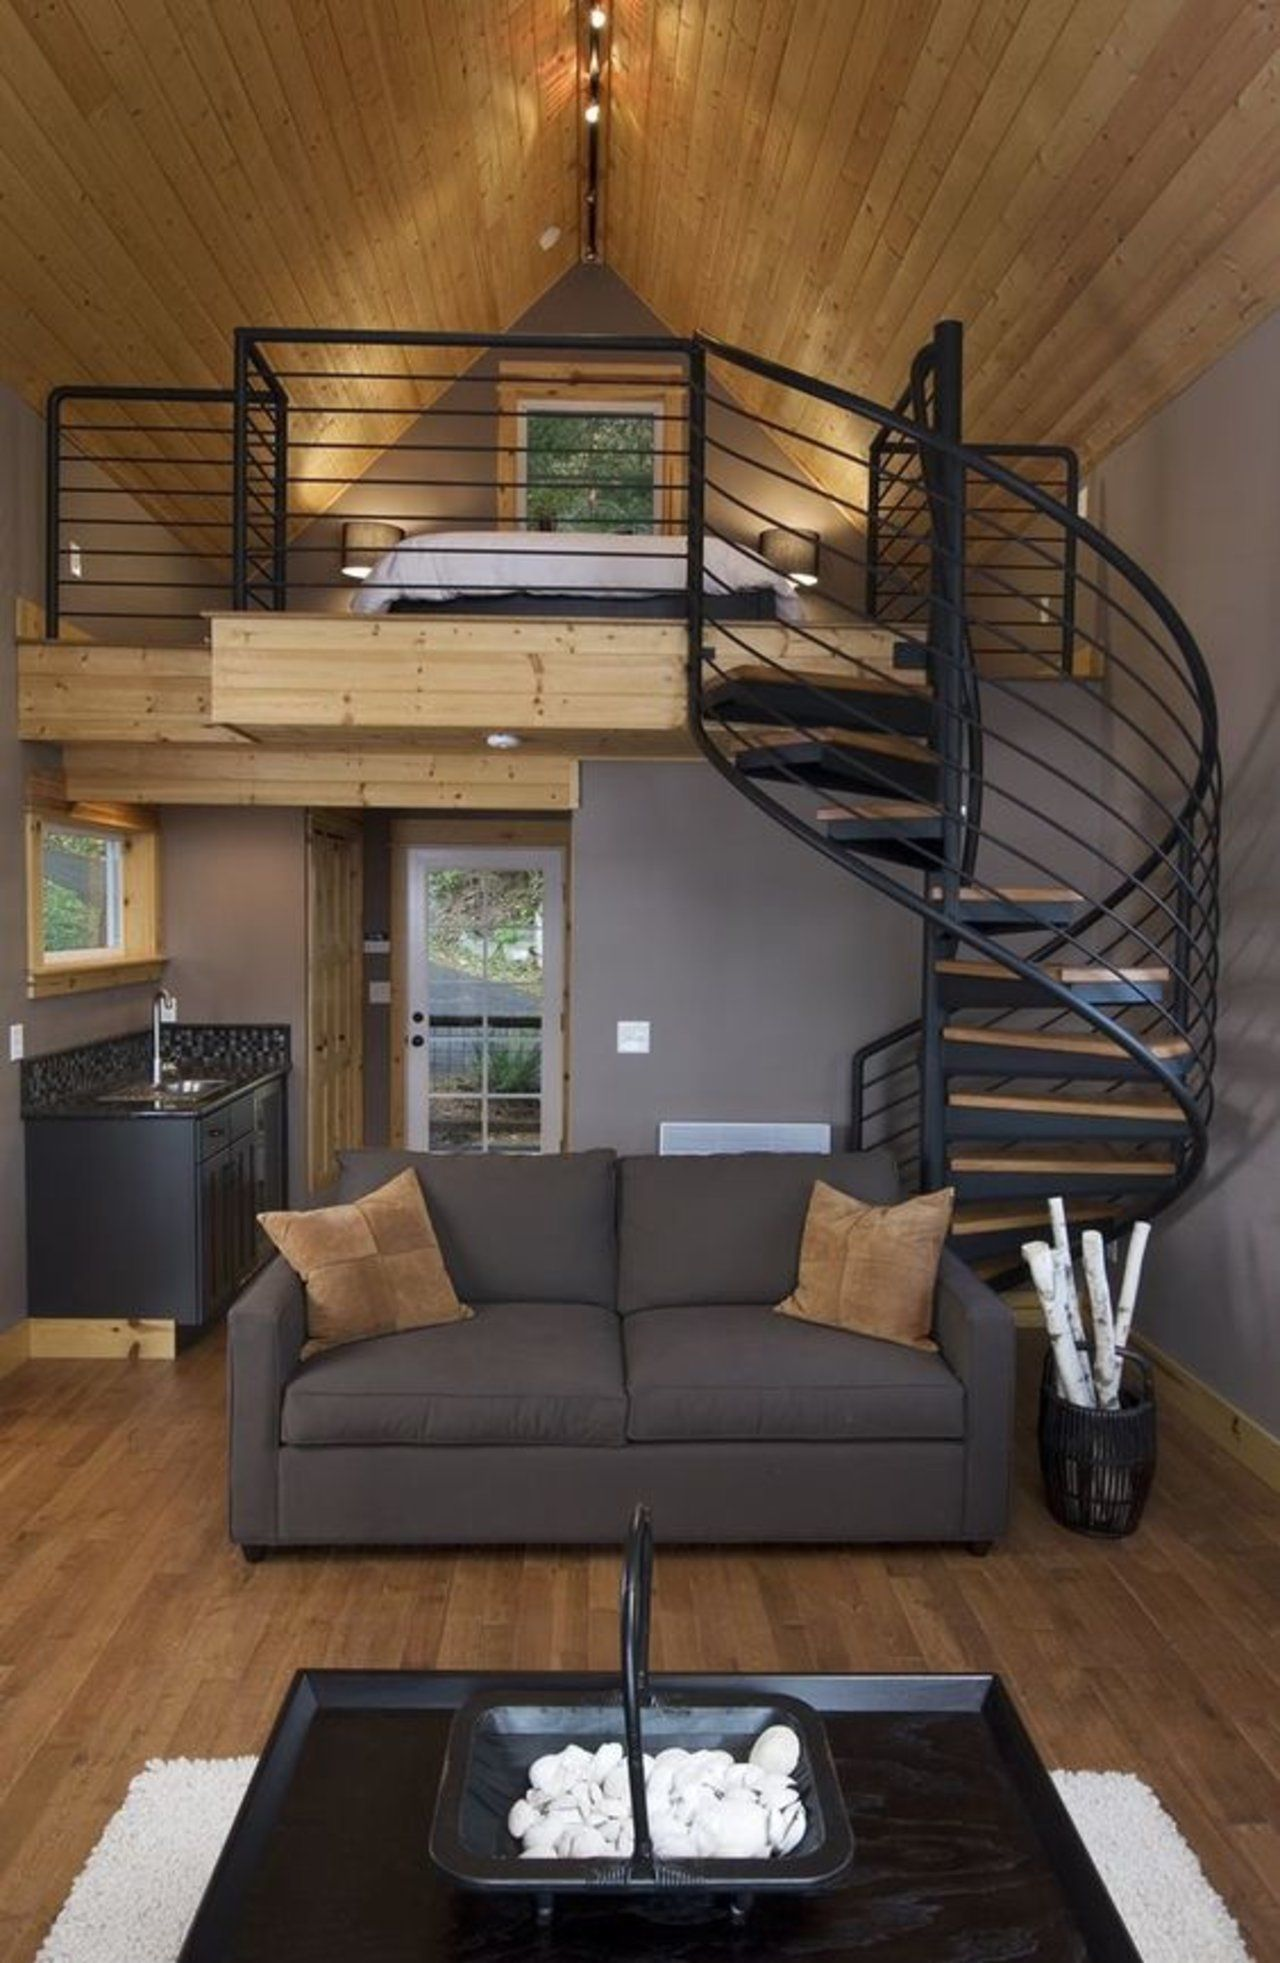 Stylish tiny house with a spiral staircase